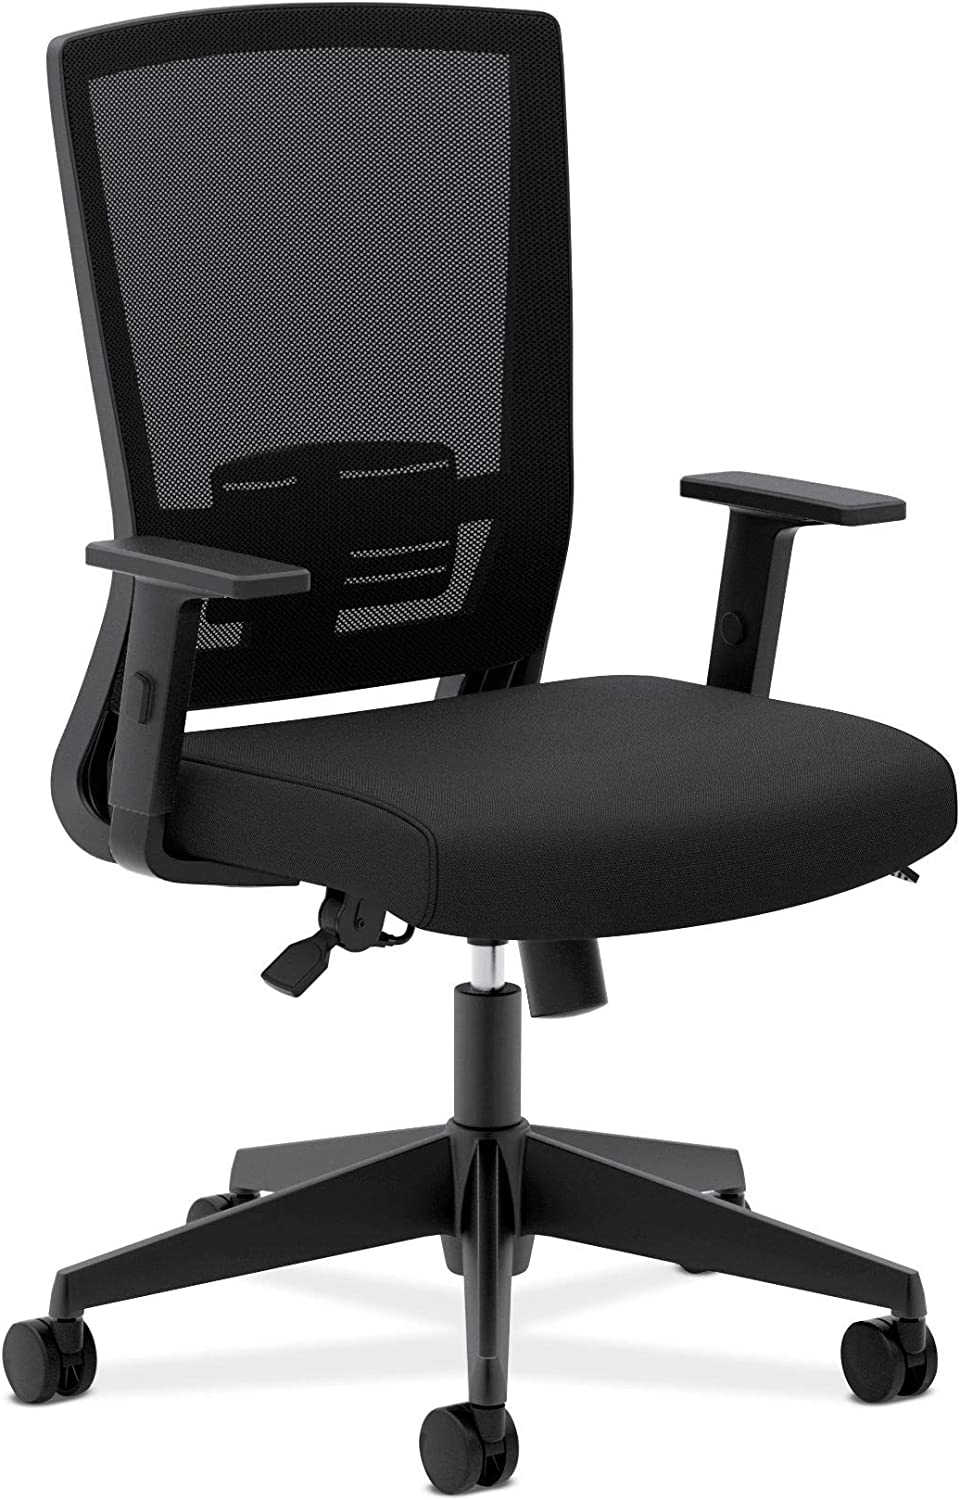 HON Entire Mesh Task Chair - High Back Work Chair with Adjustable Arms, Black (HVL541)